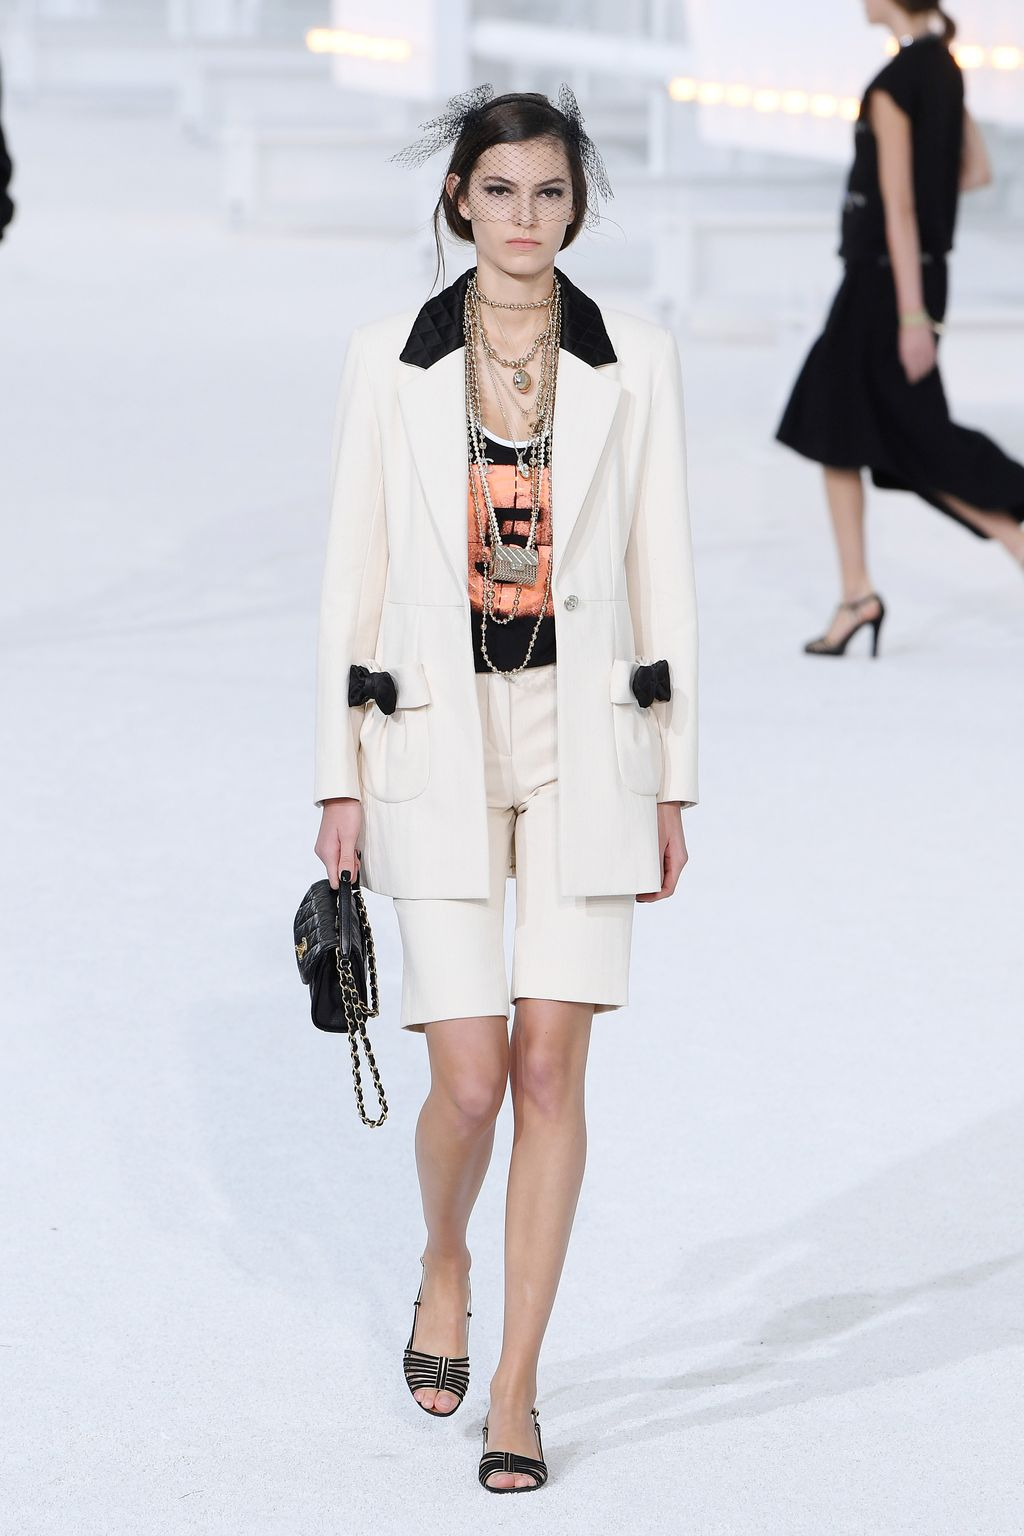 PARIS, FRANCE - OCTOBER 06: A model walks the runway during the Chanel Womenswear Spring/Summer 2021 show as part of Paris Fashion Week on October 06, 2020 in Paris, France. (Photo by Pascal Le Segretain/Getty Images)